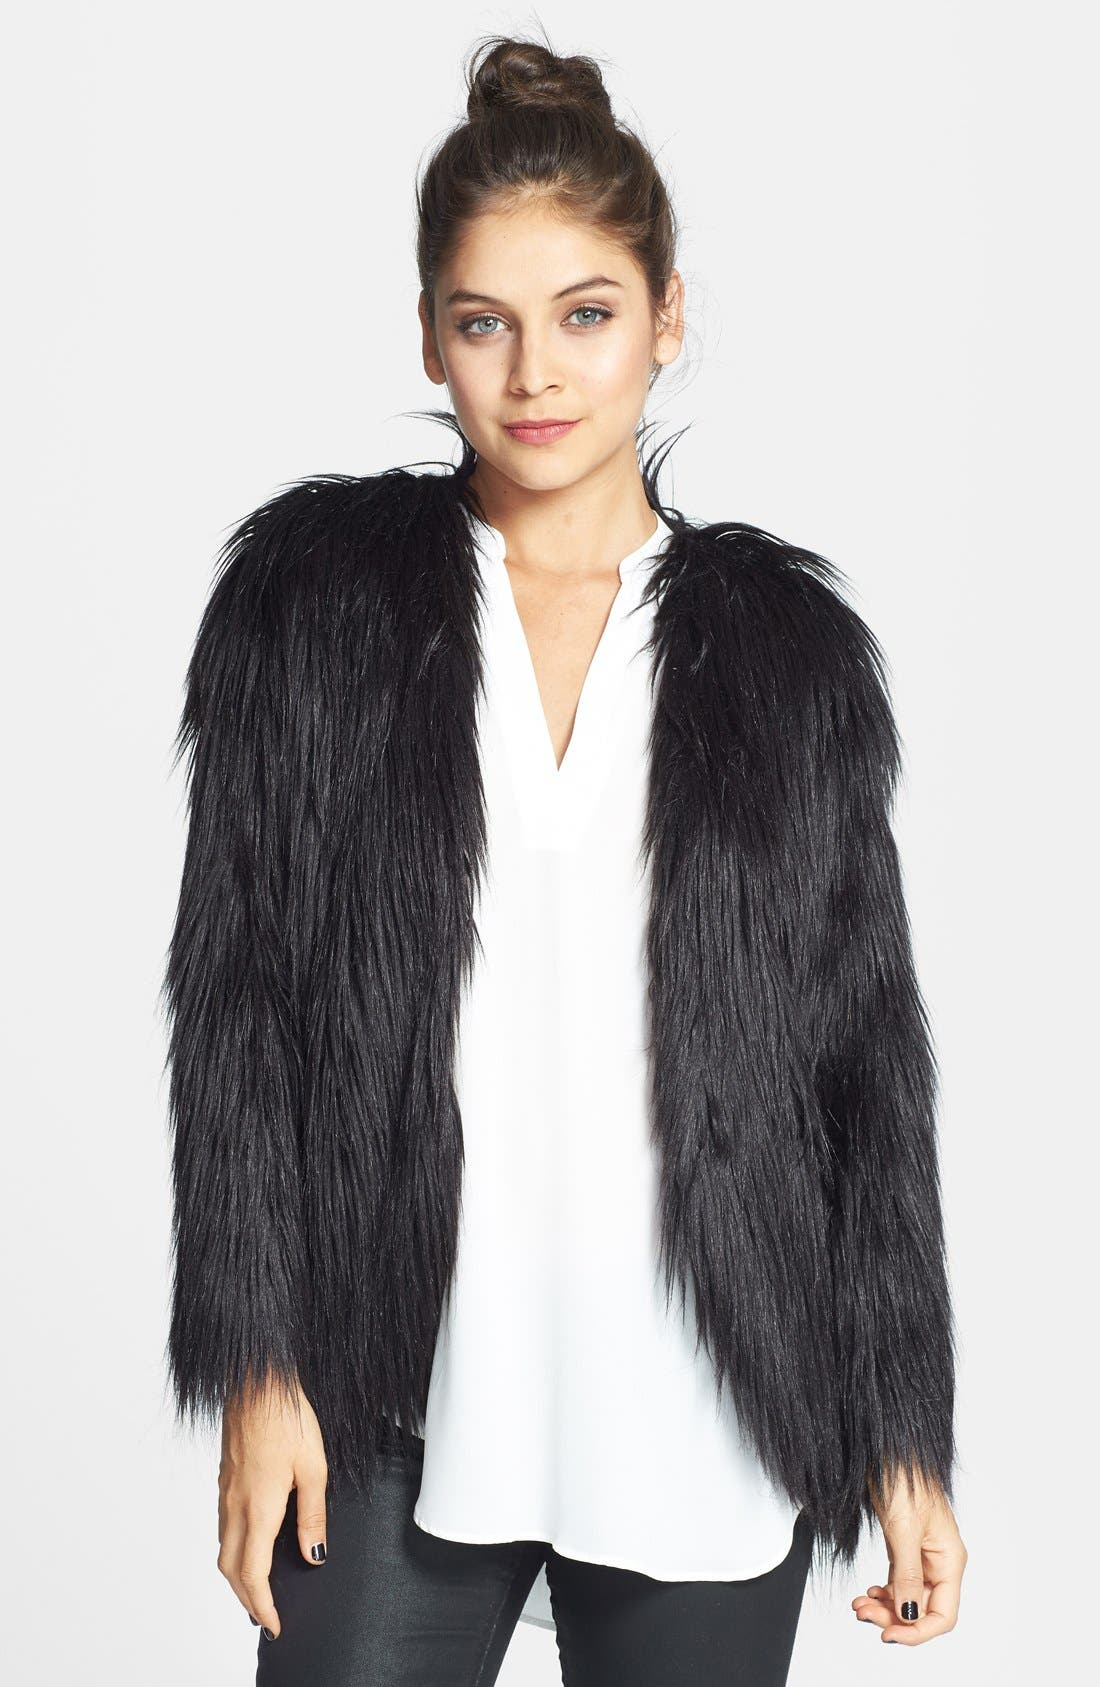 Alternate Image 1 Selected - Hot & Delicious Faux Fur Jacket (Juniors)